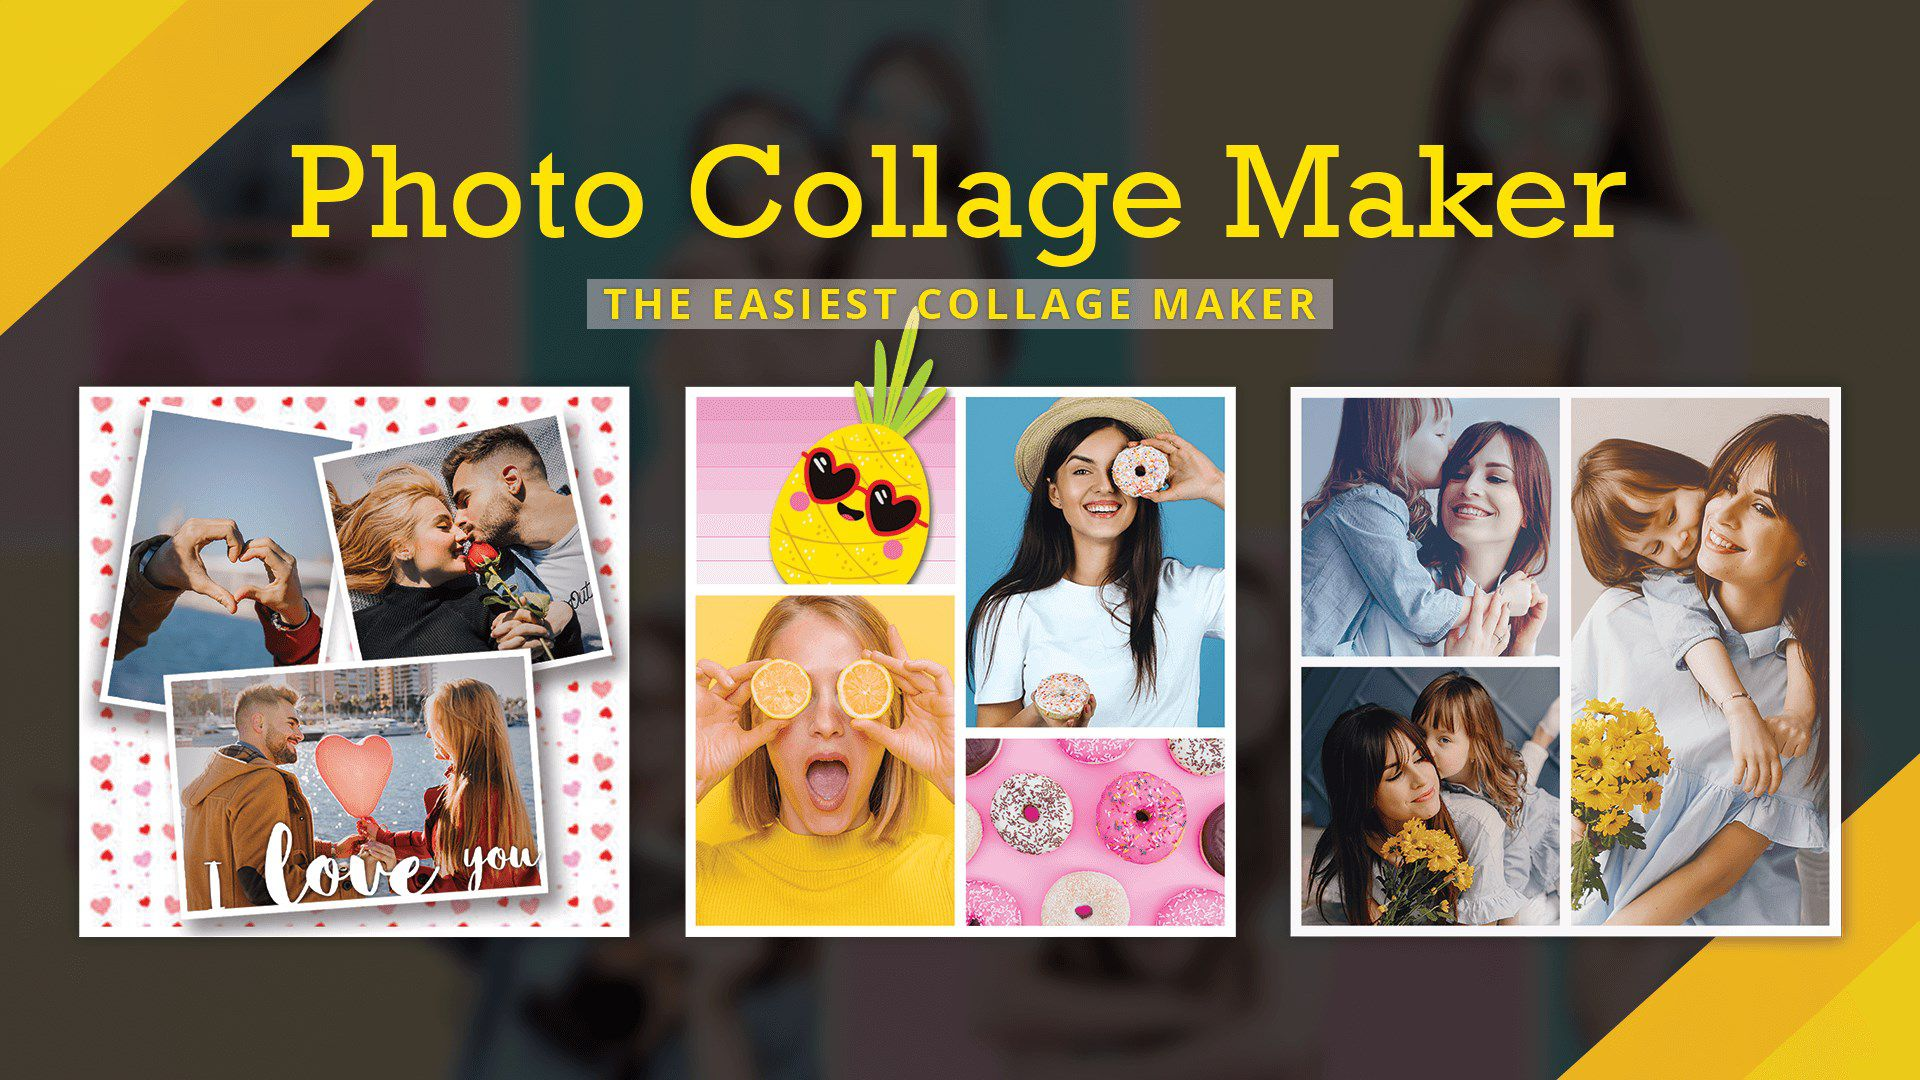 000 Rare Free Photo Collage Template No Download Example Full